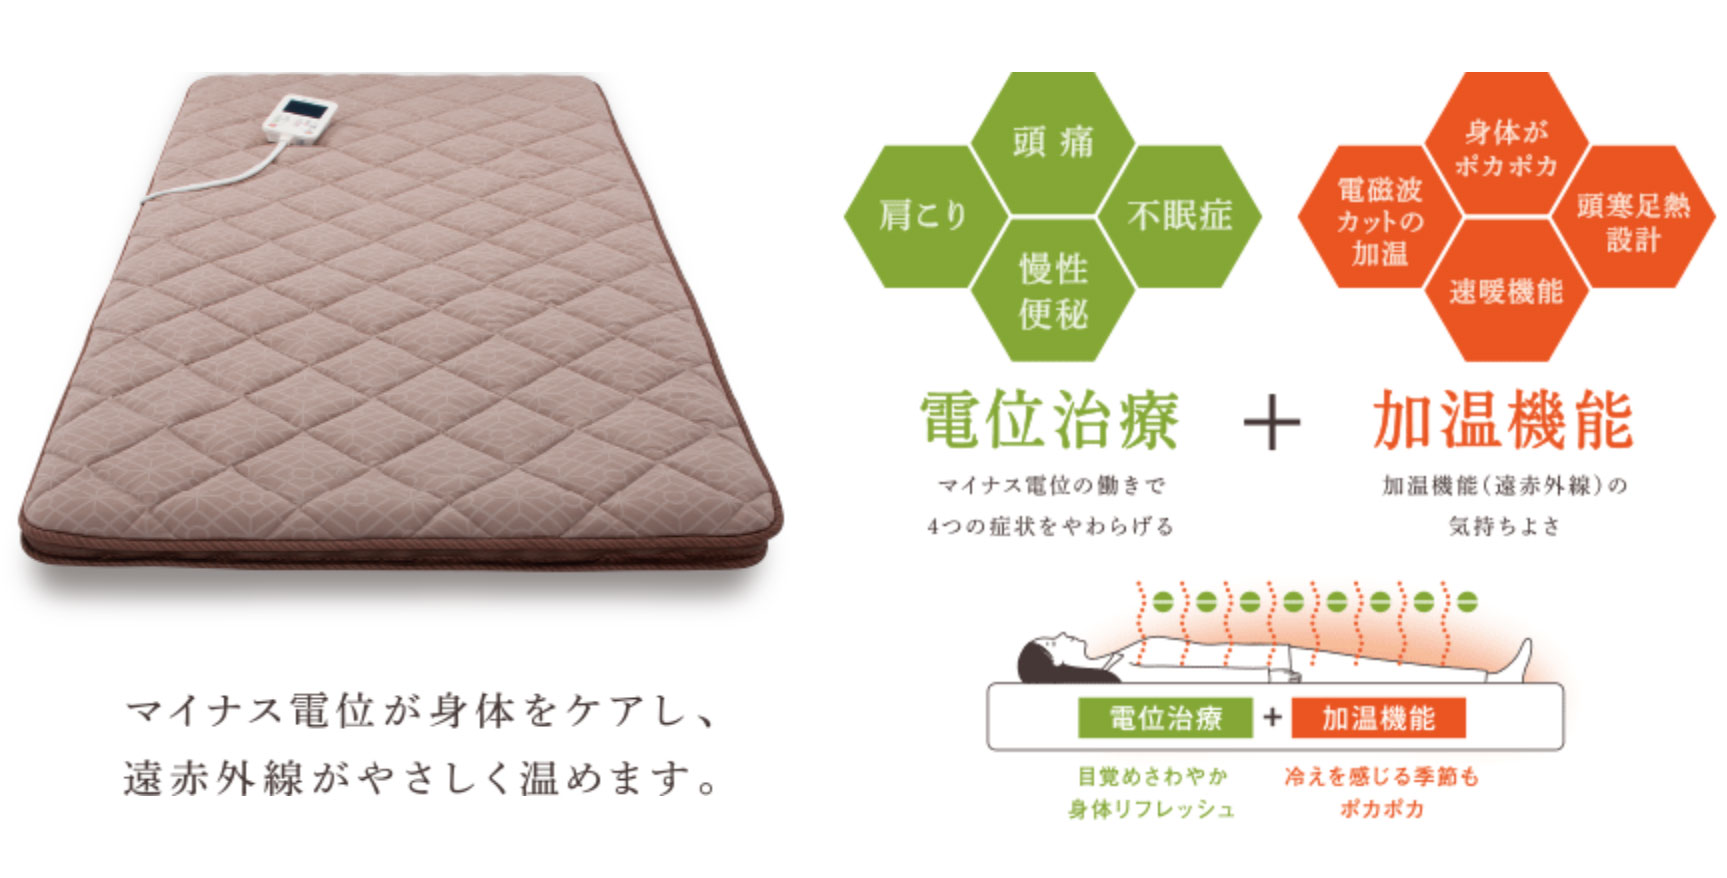 Re:care 電位治療と加温機能を同時使用で快適